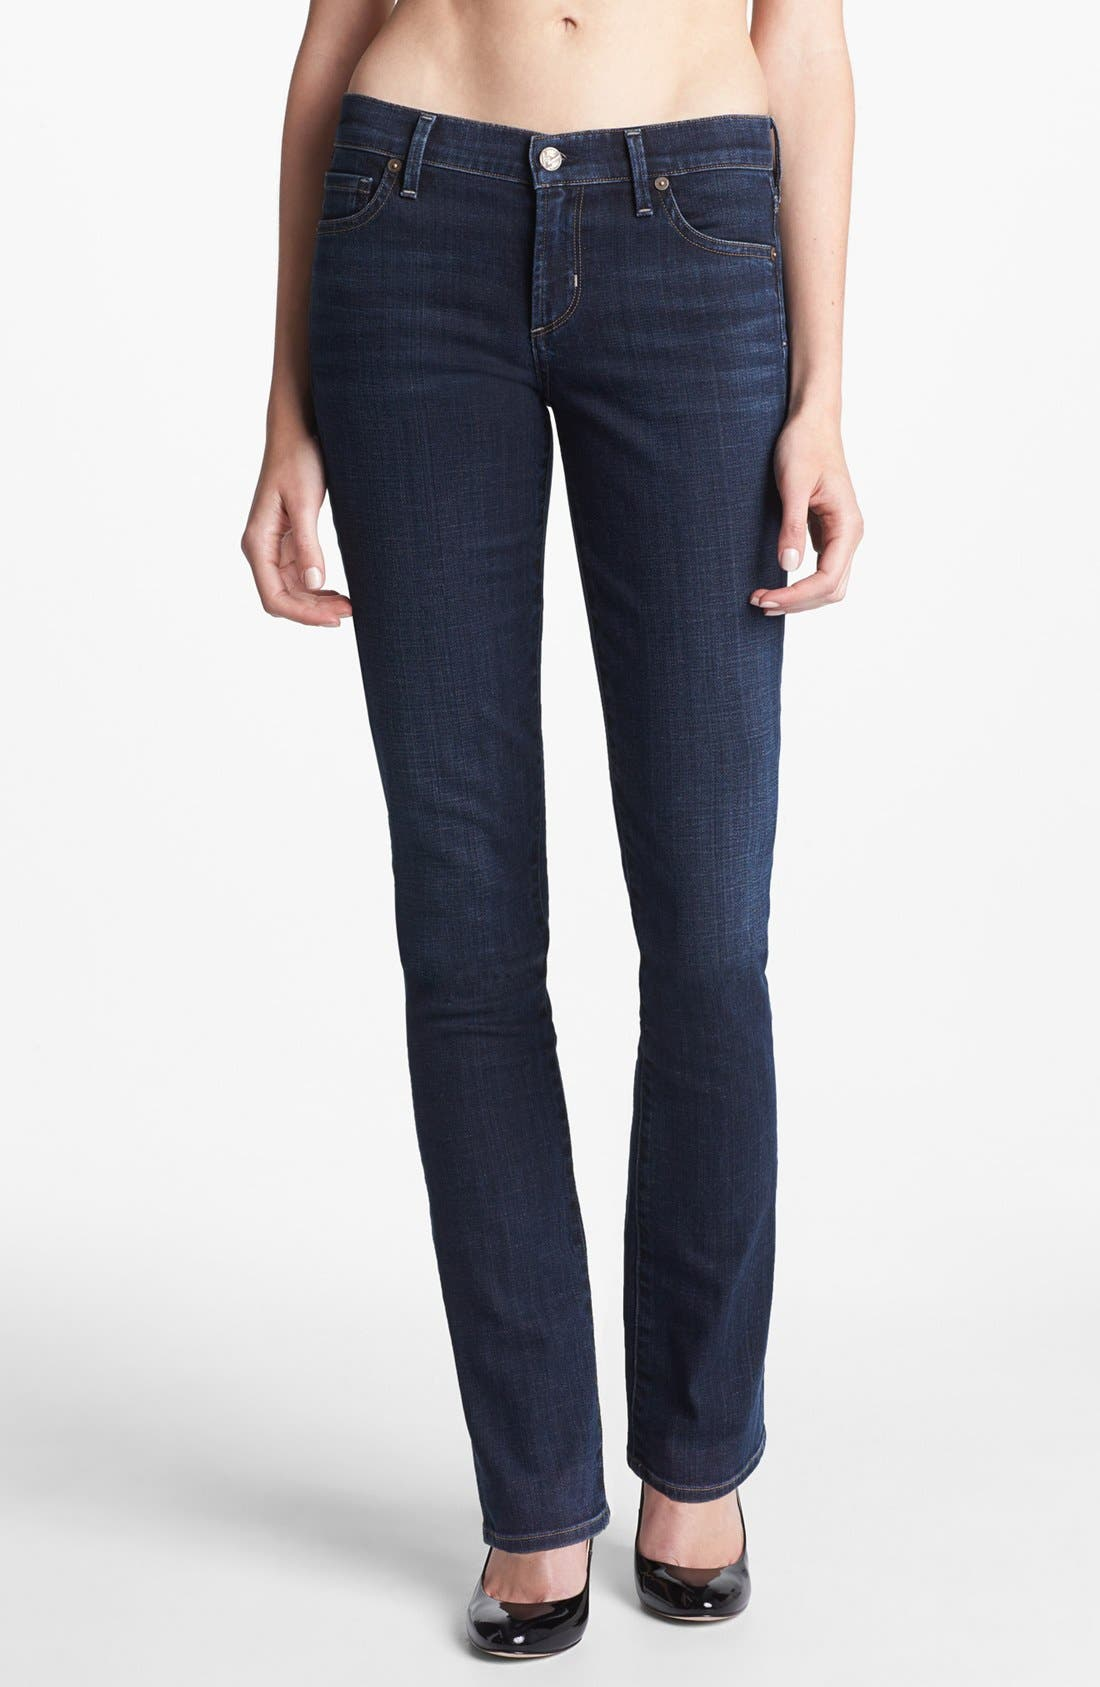 Alternate Image 1 Selected - Citizens of Humanity 'Ava' Straight Leg Jeans (Celestial)